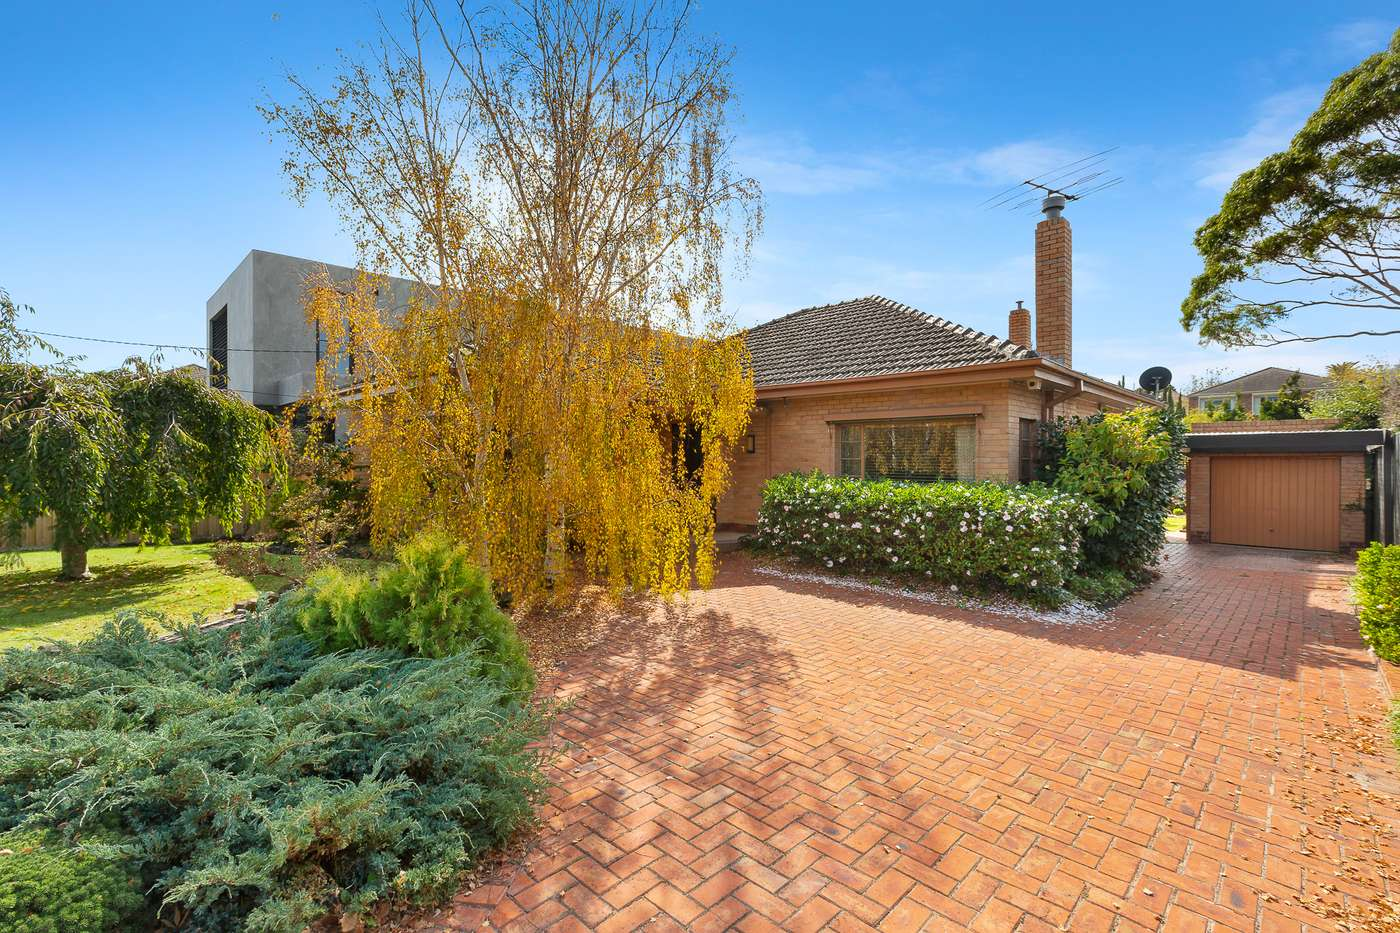 Main view of Homely house listing, 31 Huntingfield Rd, Brighton, VIC 3186